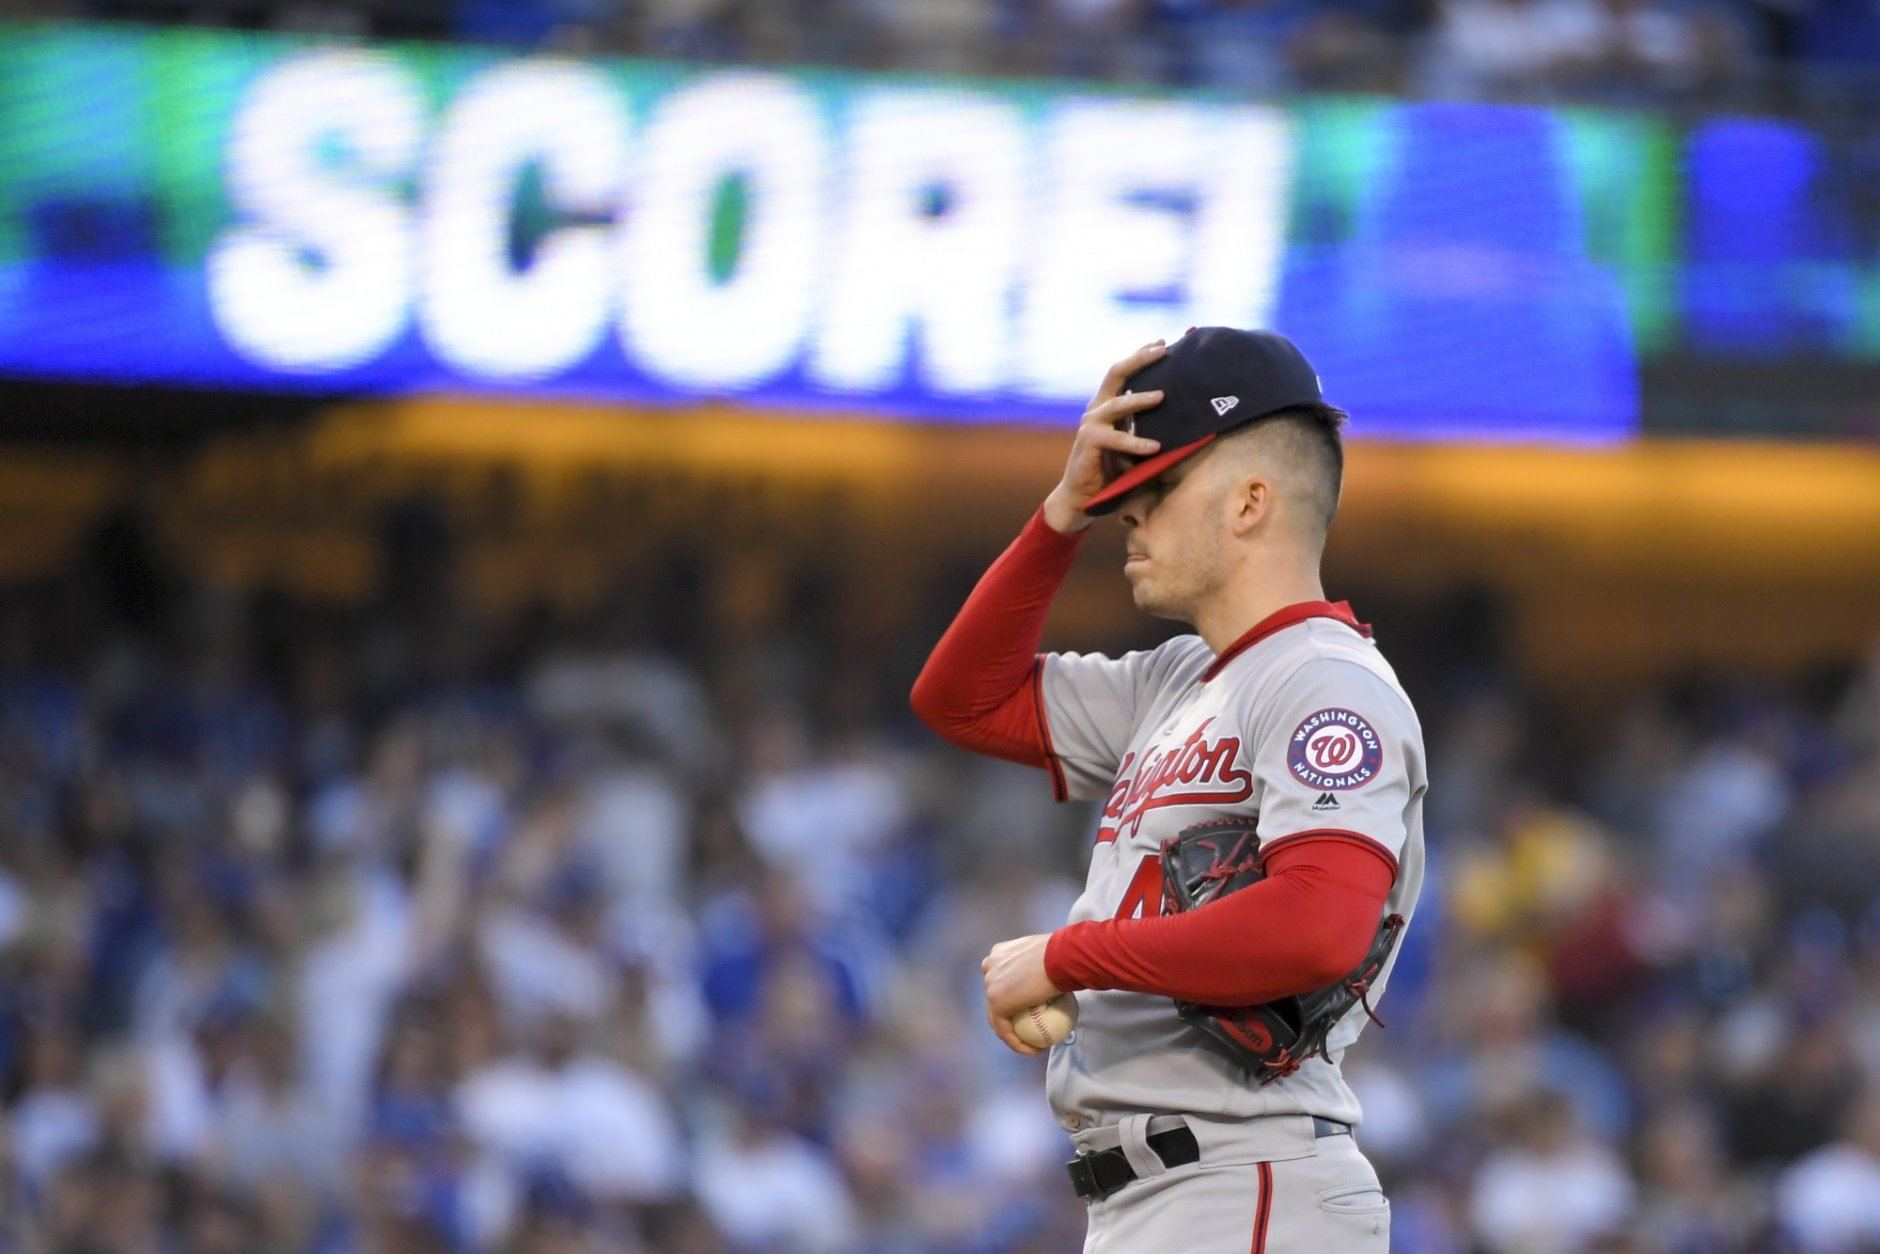 Washington Nationals starting pitcher Patrick Corbin reacts after waking in a run during the first inning against the Los Angeles Dodgers in Game 1 in baseball's National League Divisional Series on Thursday, Oct. 3, 2019, in Los Angeles. (AP Photo/Mark J. Terrill)